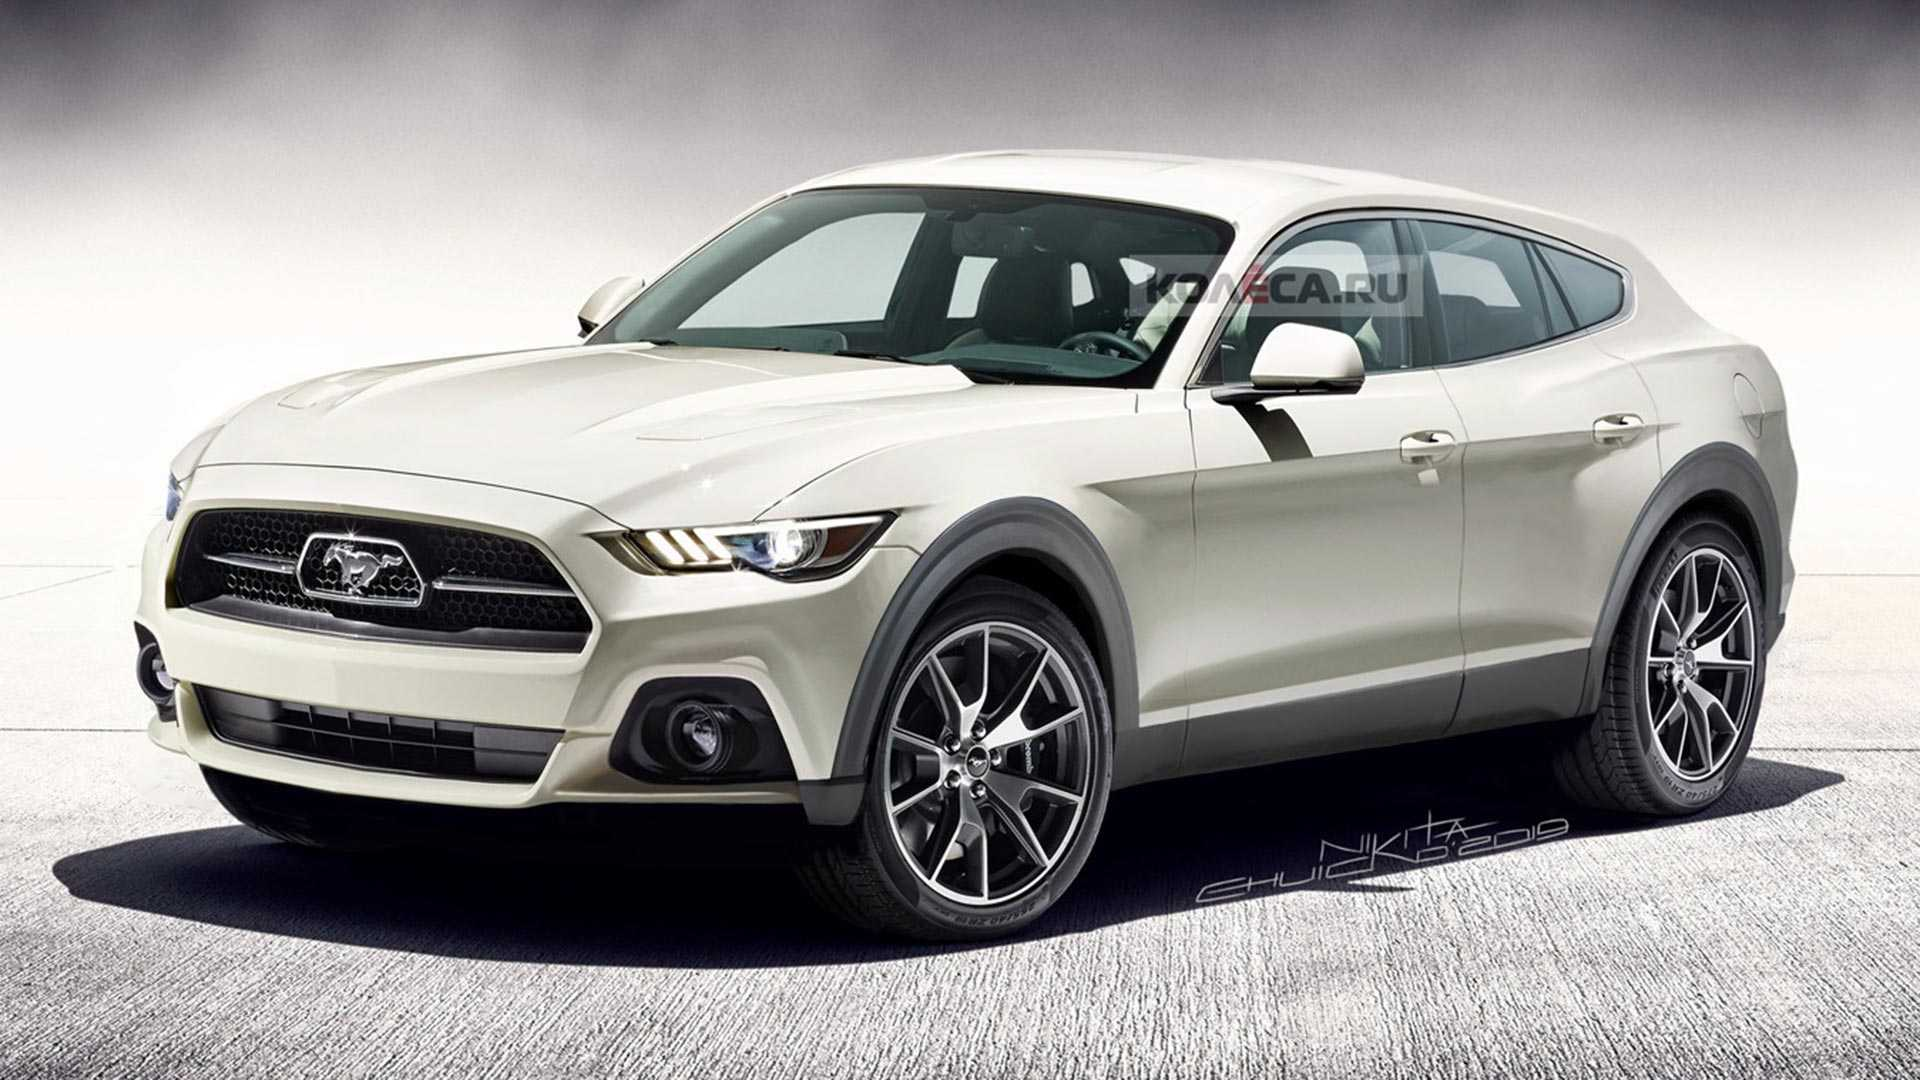 84 All New Ford Mustang Suv 2020 Price Design And Review